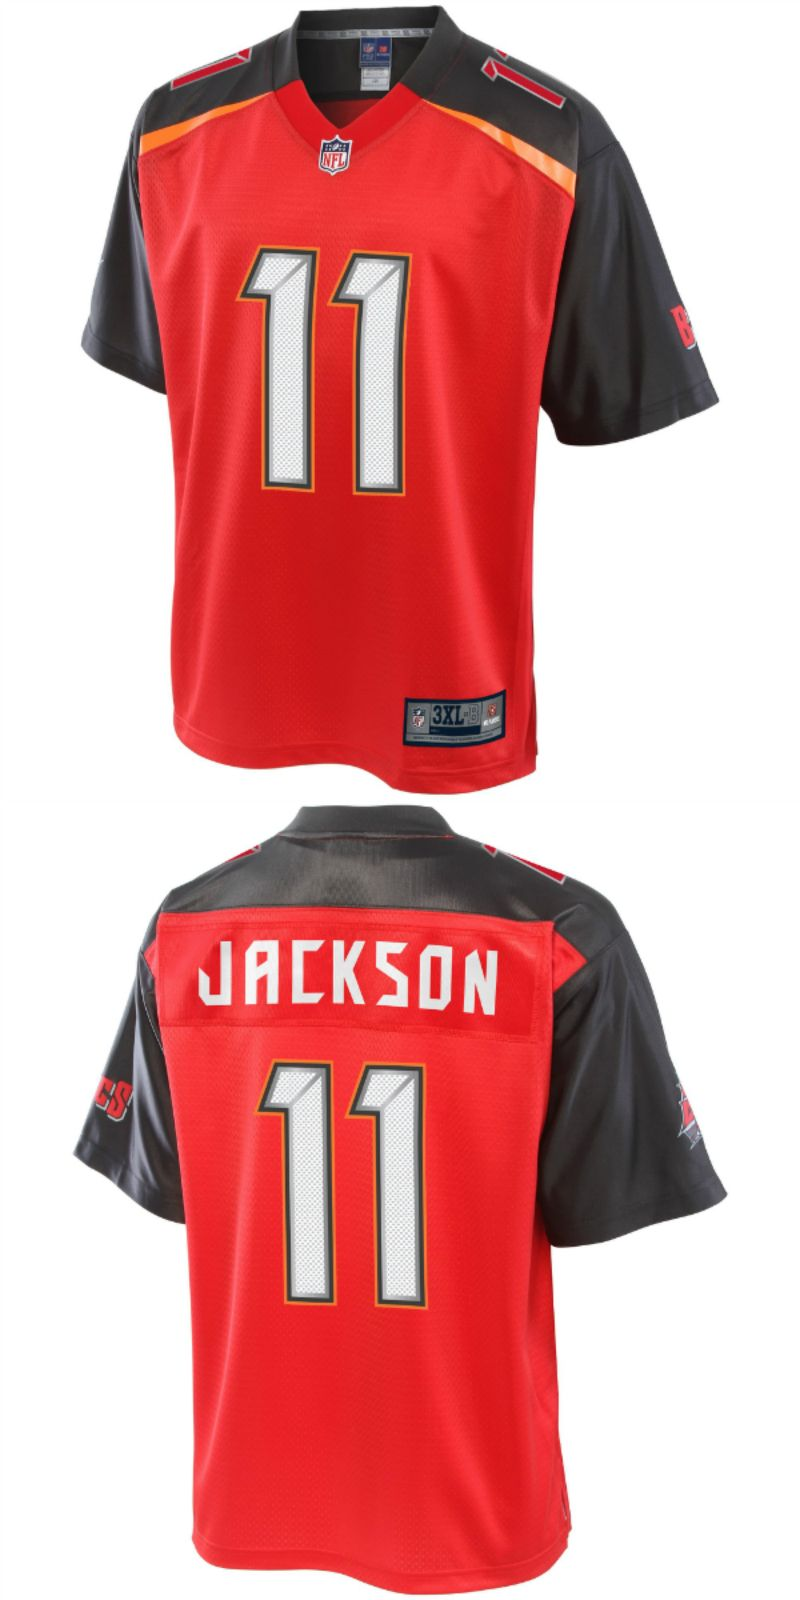 info for 7f5b6 c6d46 UP TO 70% OFF. DeSean Jackson Tampa Bay Buccaneers NFL Pro ...